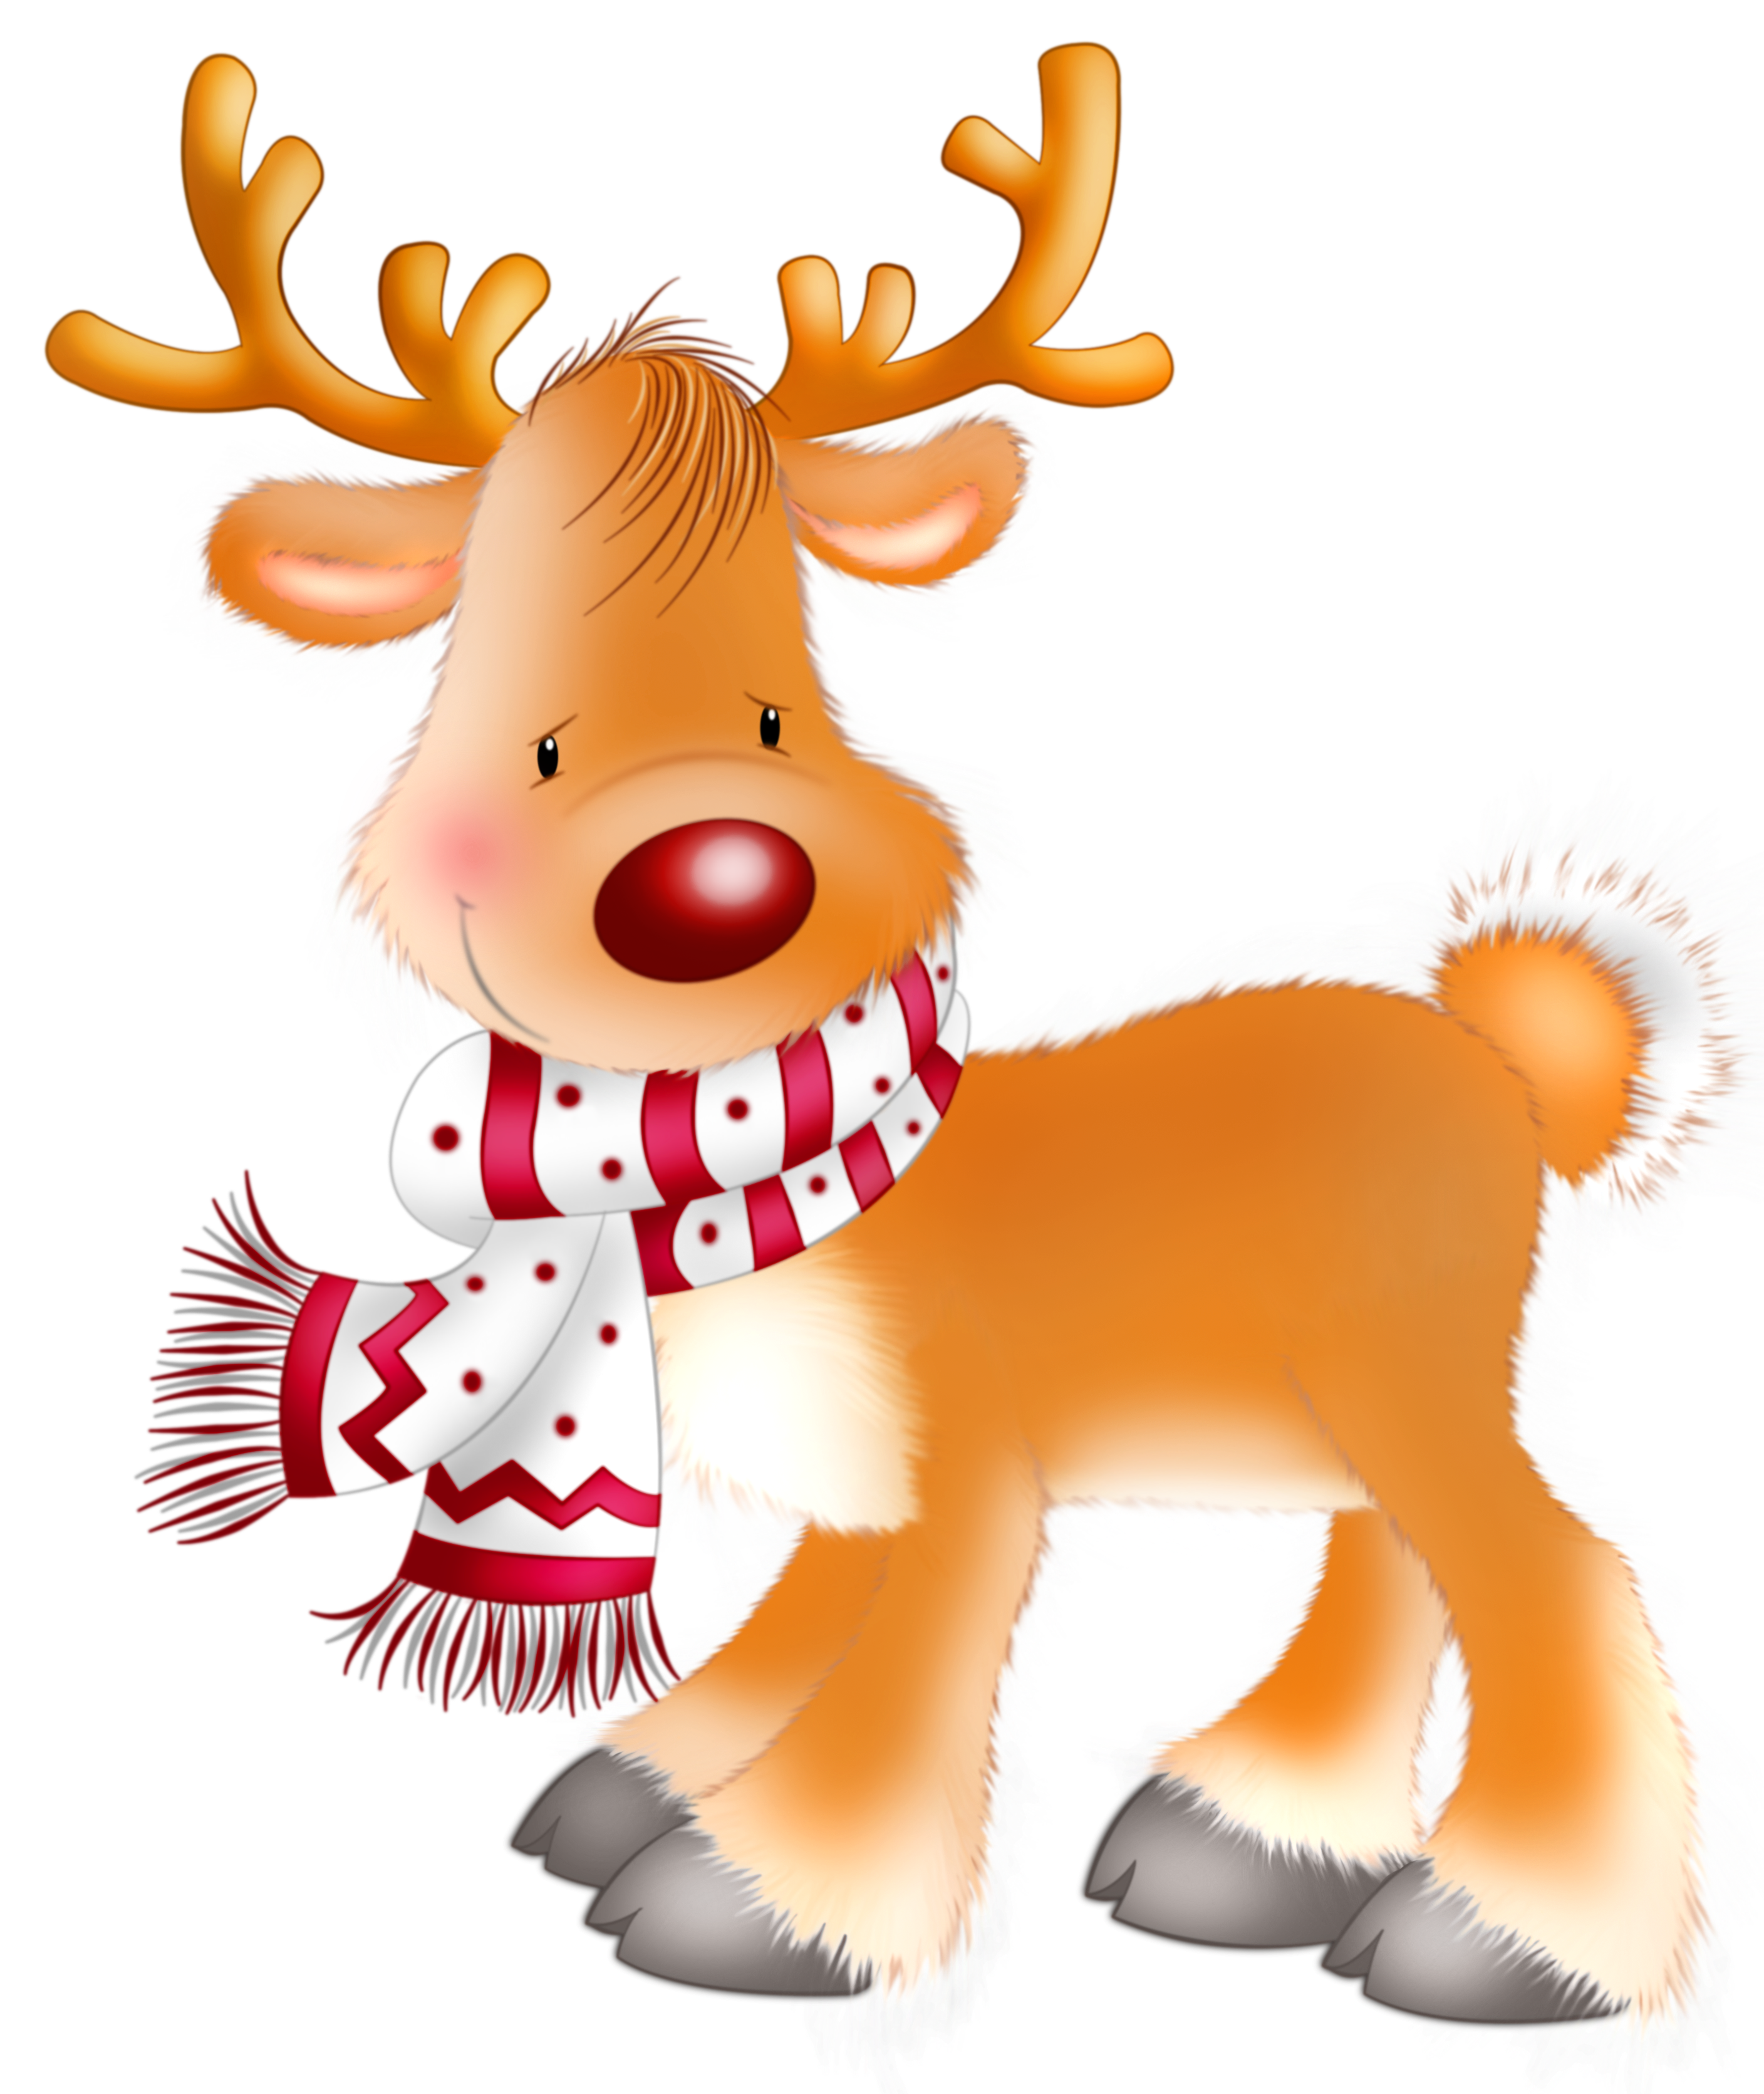 Christmas reindeer clipart - photo#4